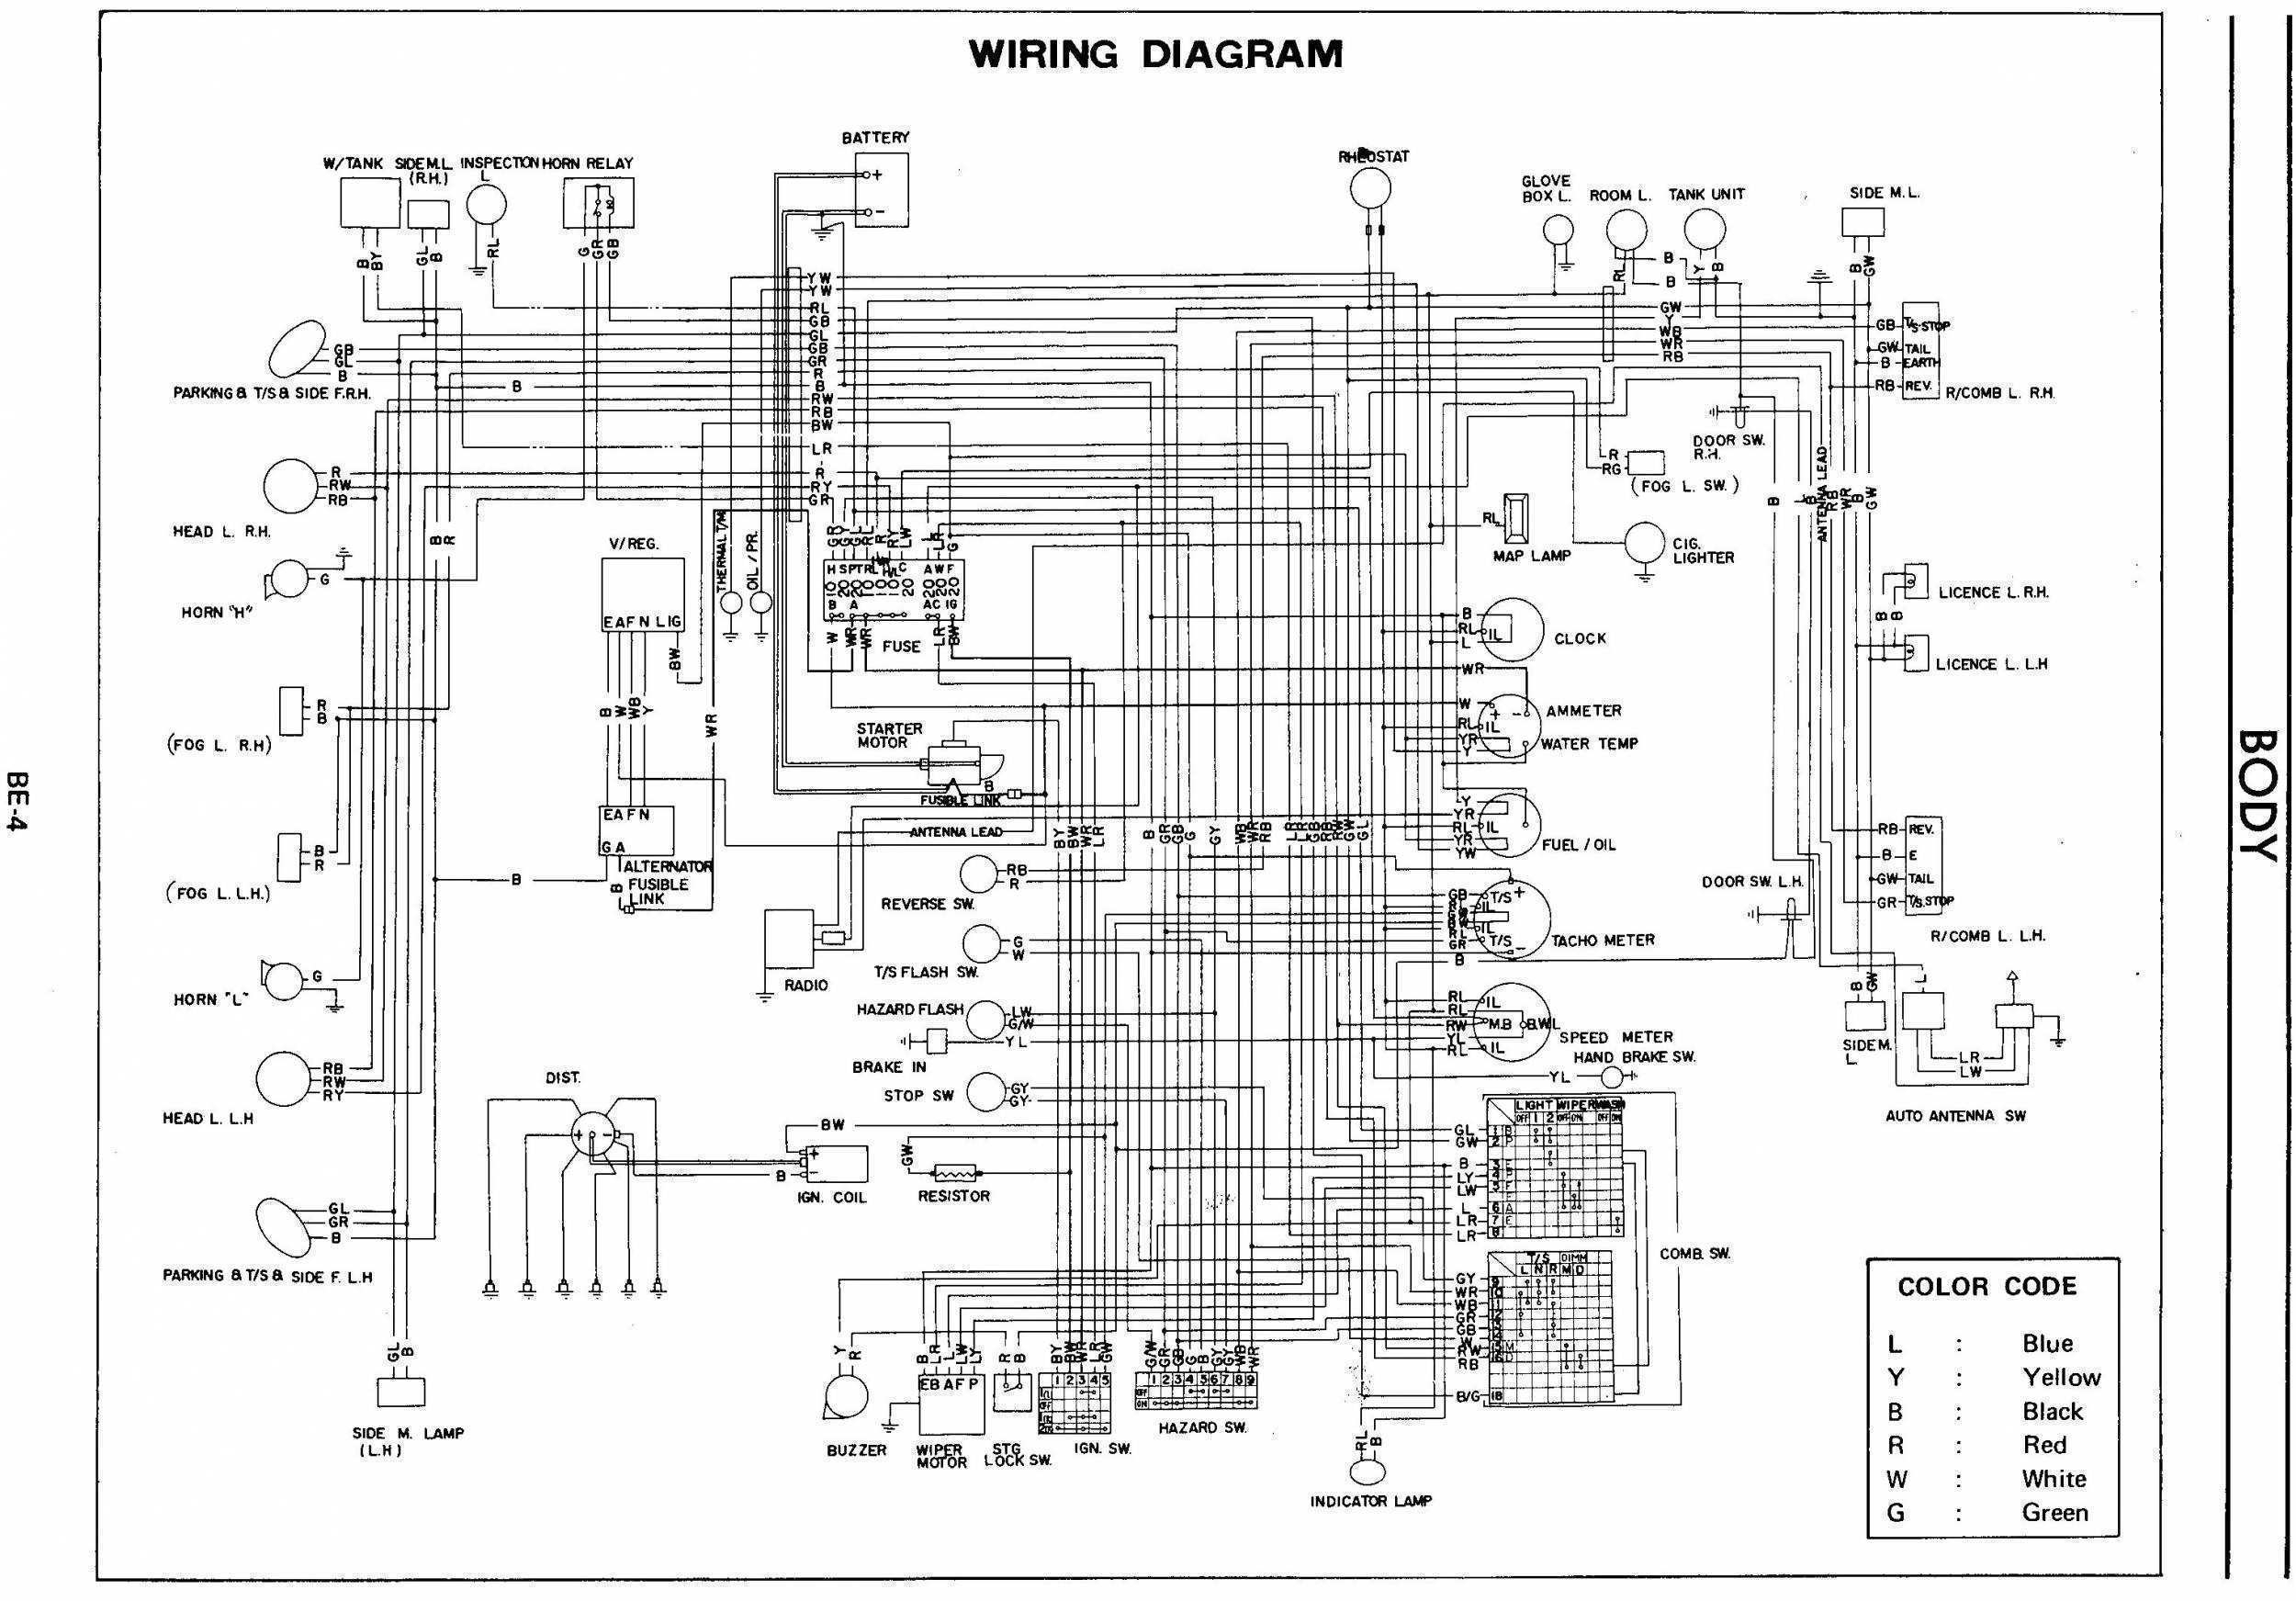 cooper fuse diagram 2009 board wiring diagrams  cooper fuse diagram 2009 #11